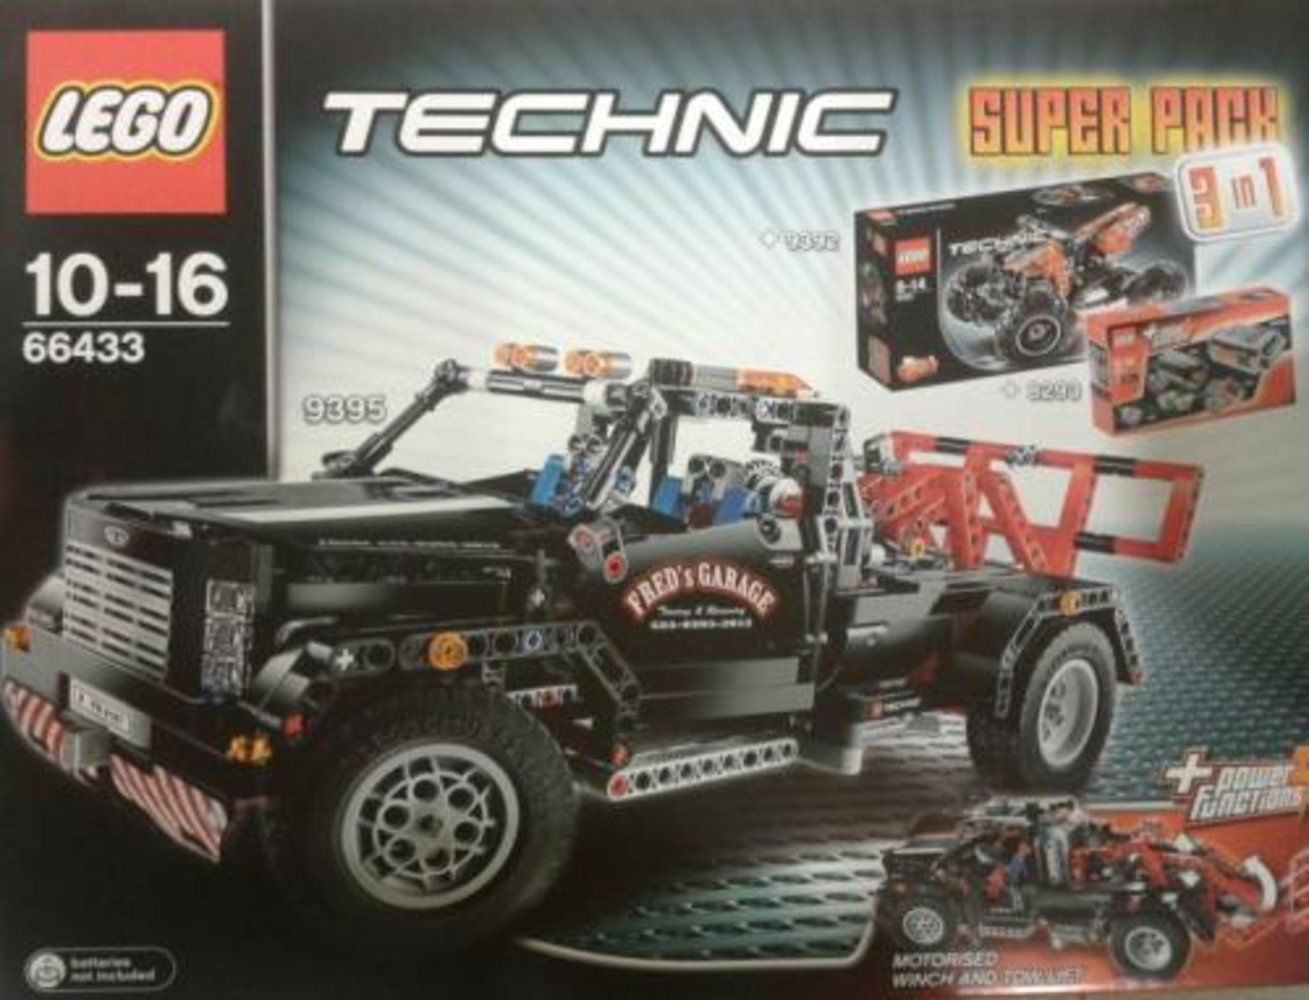 Technic Super Pack 3 in 1 (8293, 9392, 9395)